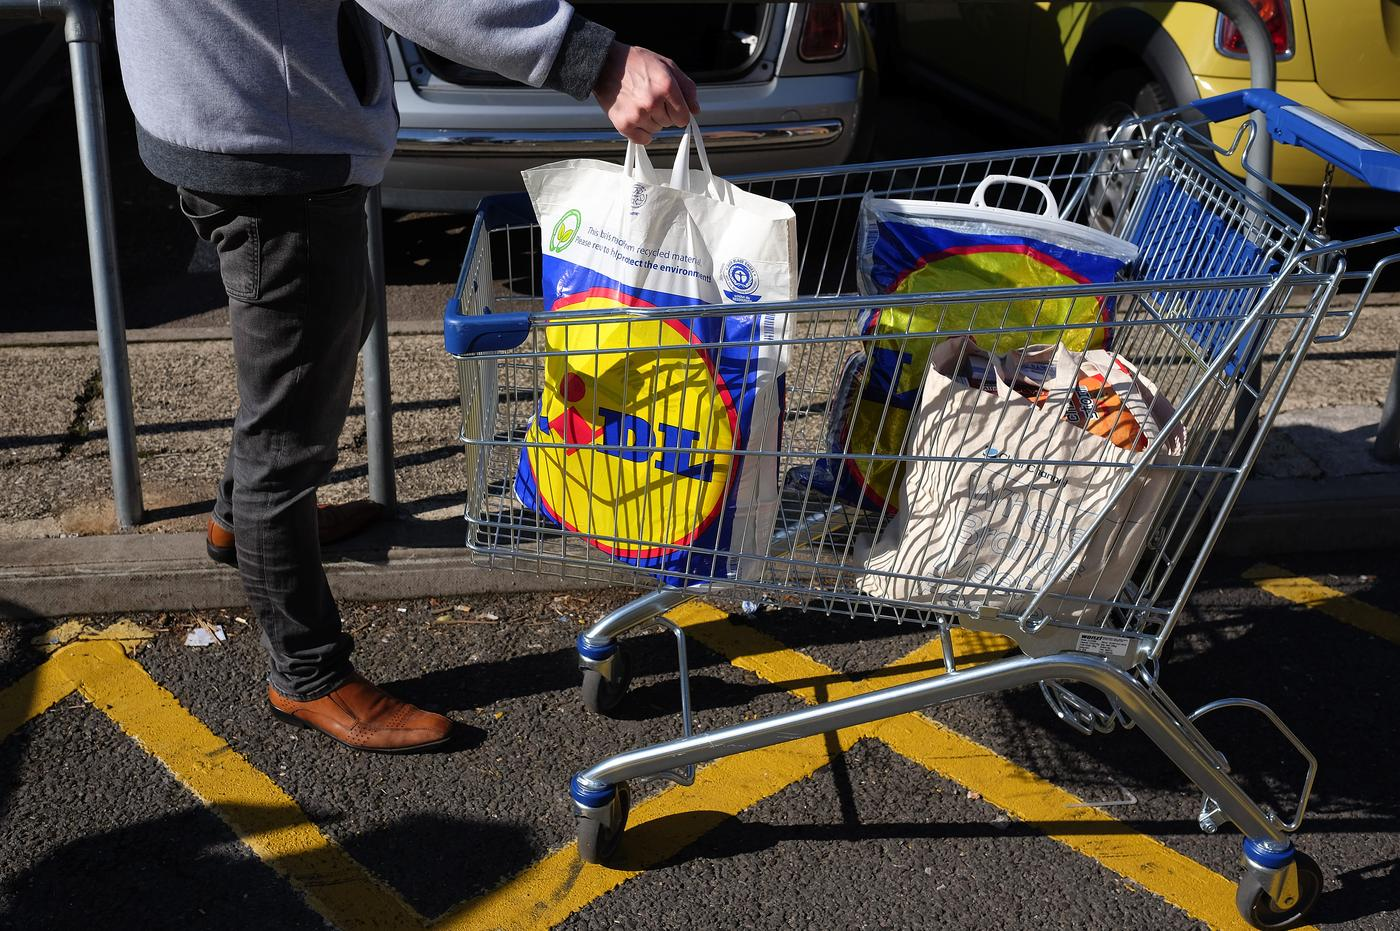 11 thoughts we all have when first shopping at Lidl